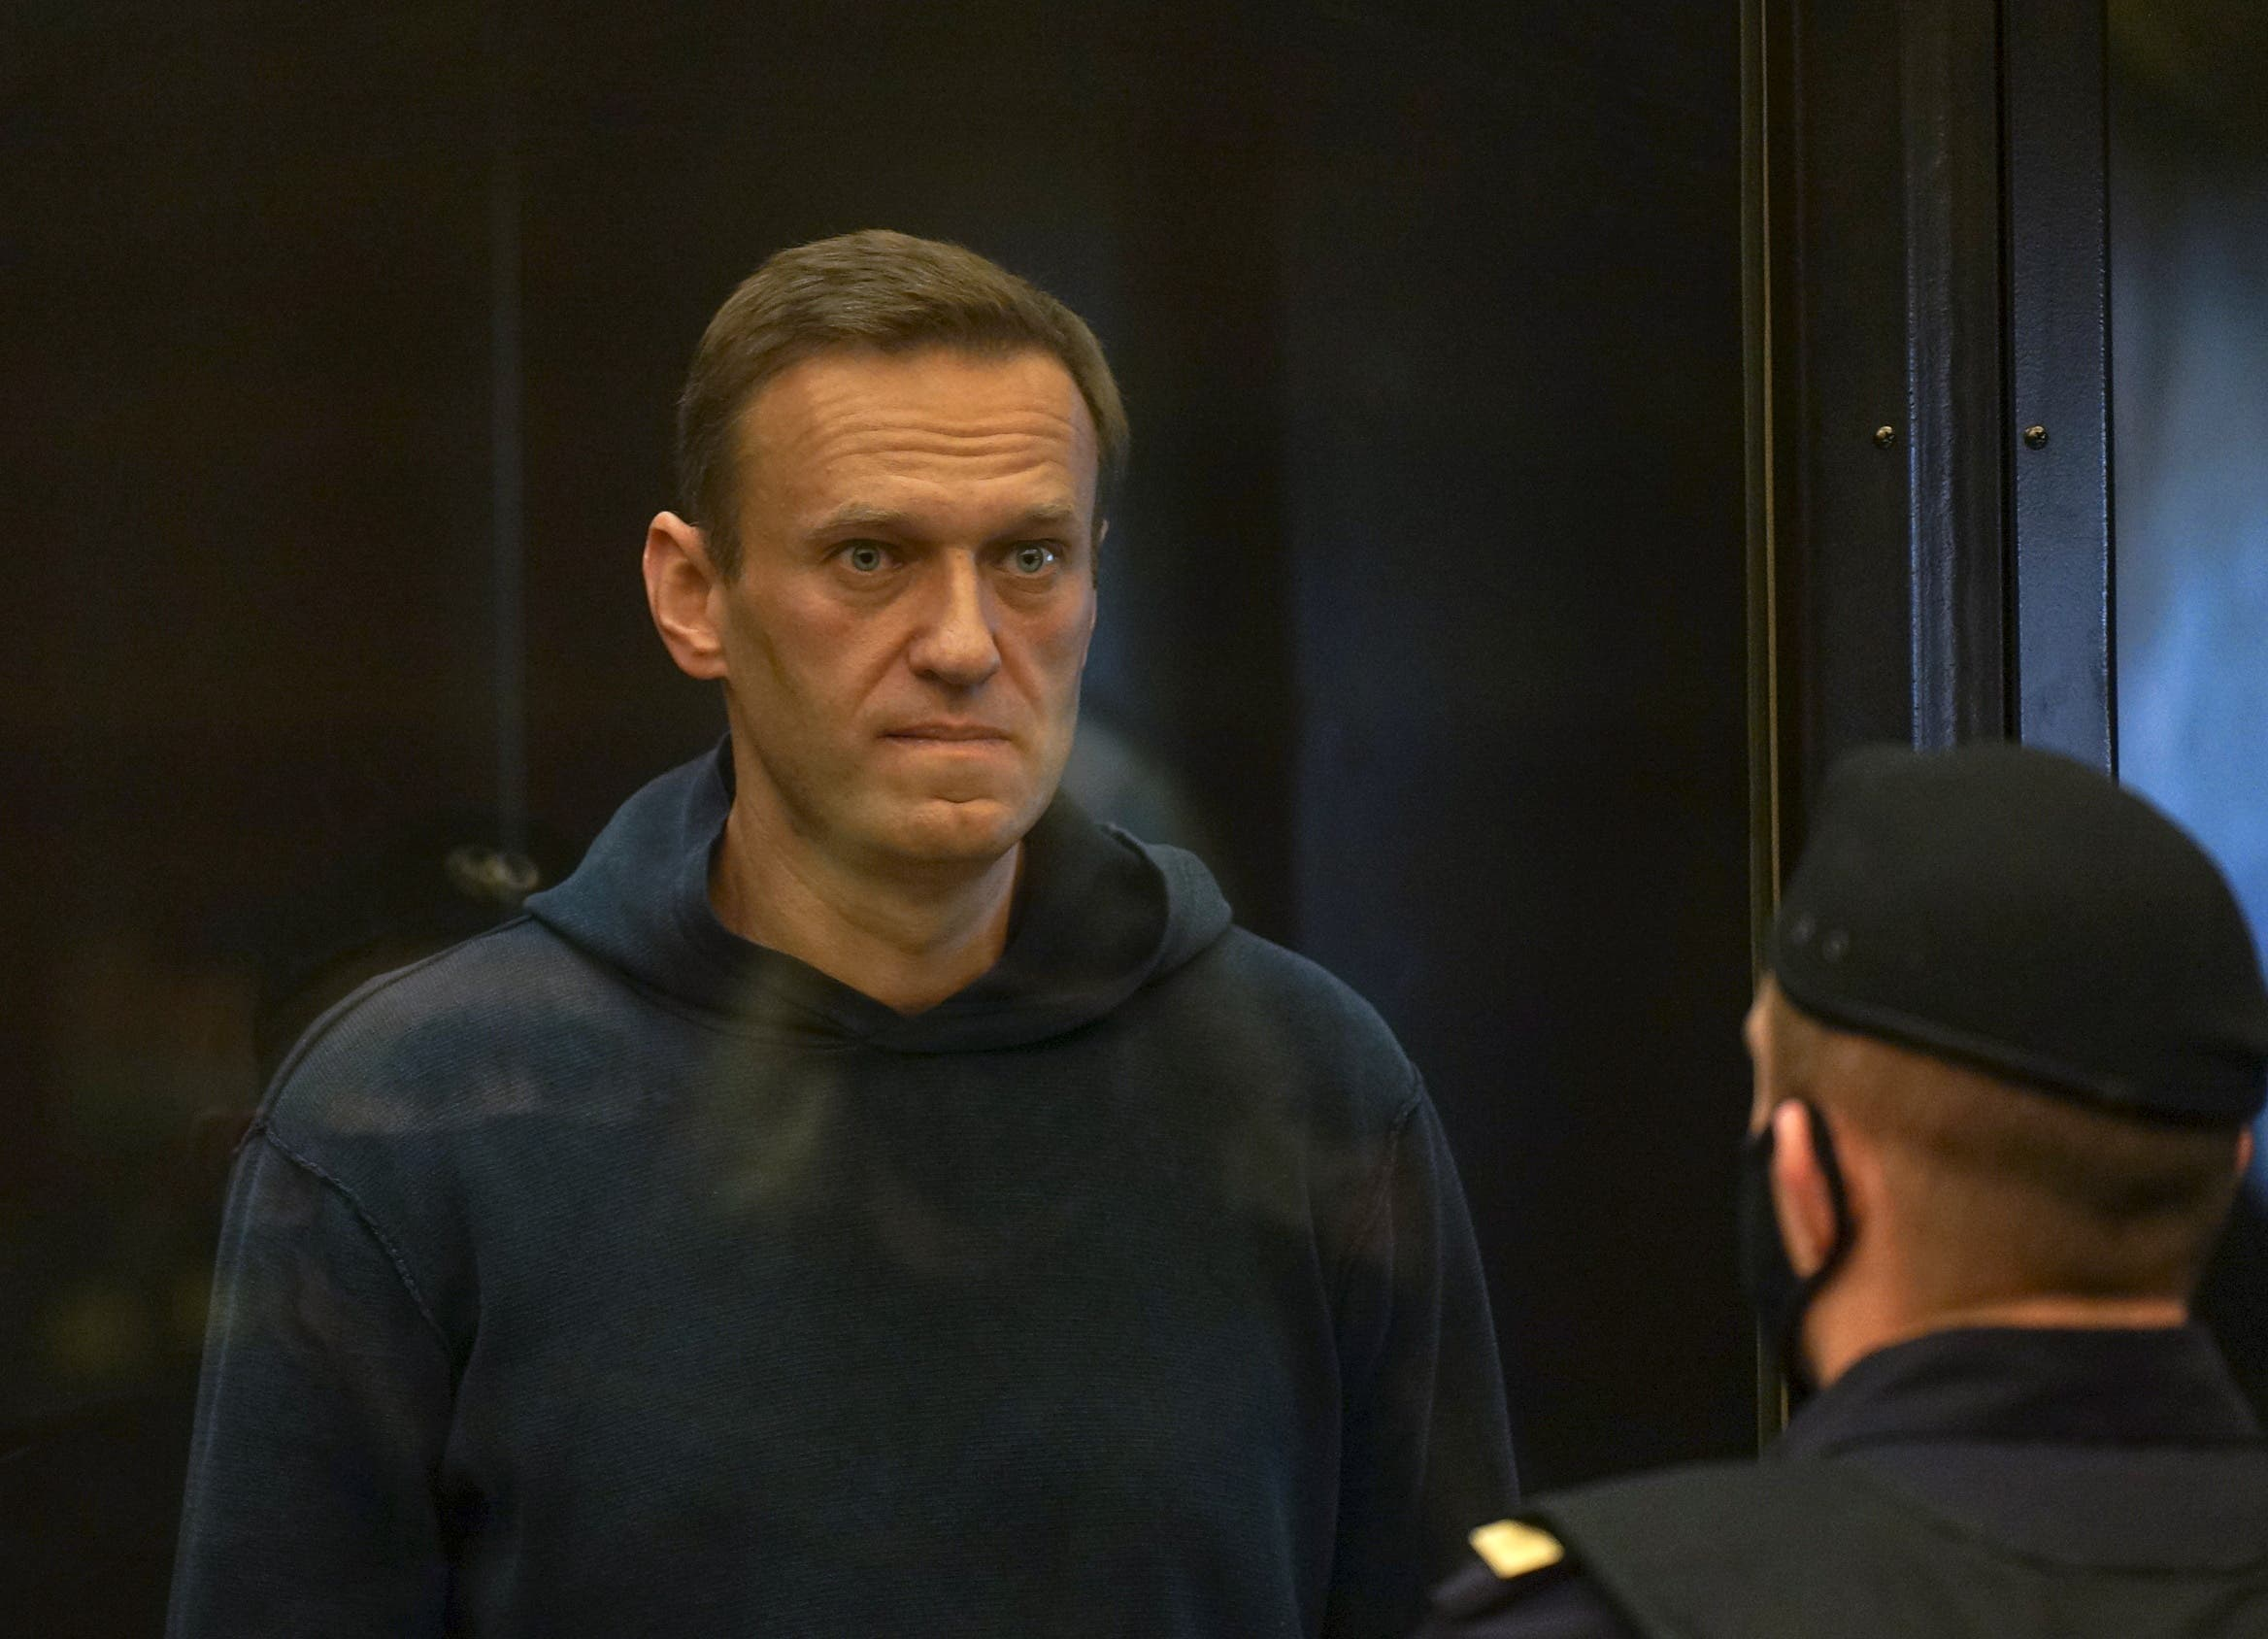 Russian opposition leader Alexei Navalny accused of flouting the terms of a suspended sentence for embezzlement attends a court hearing in Moscow, Russia February 2, 2021. (Press service of Moscow City Court/Handout via Reuters)